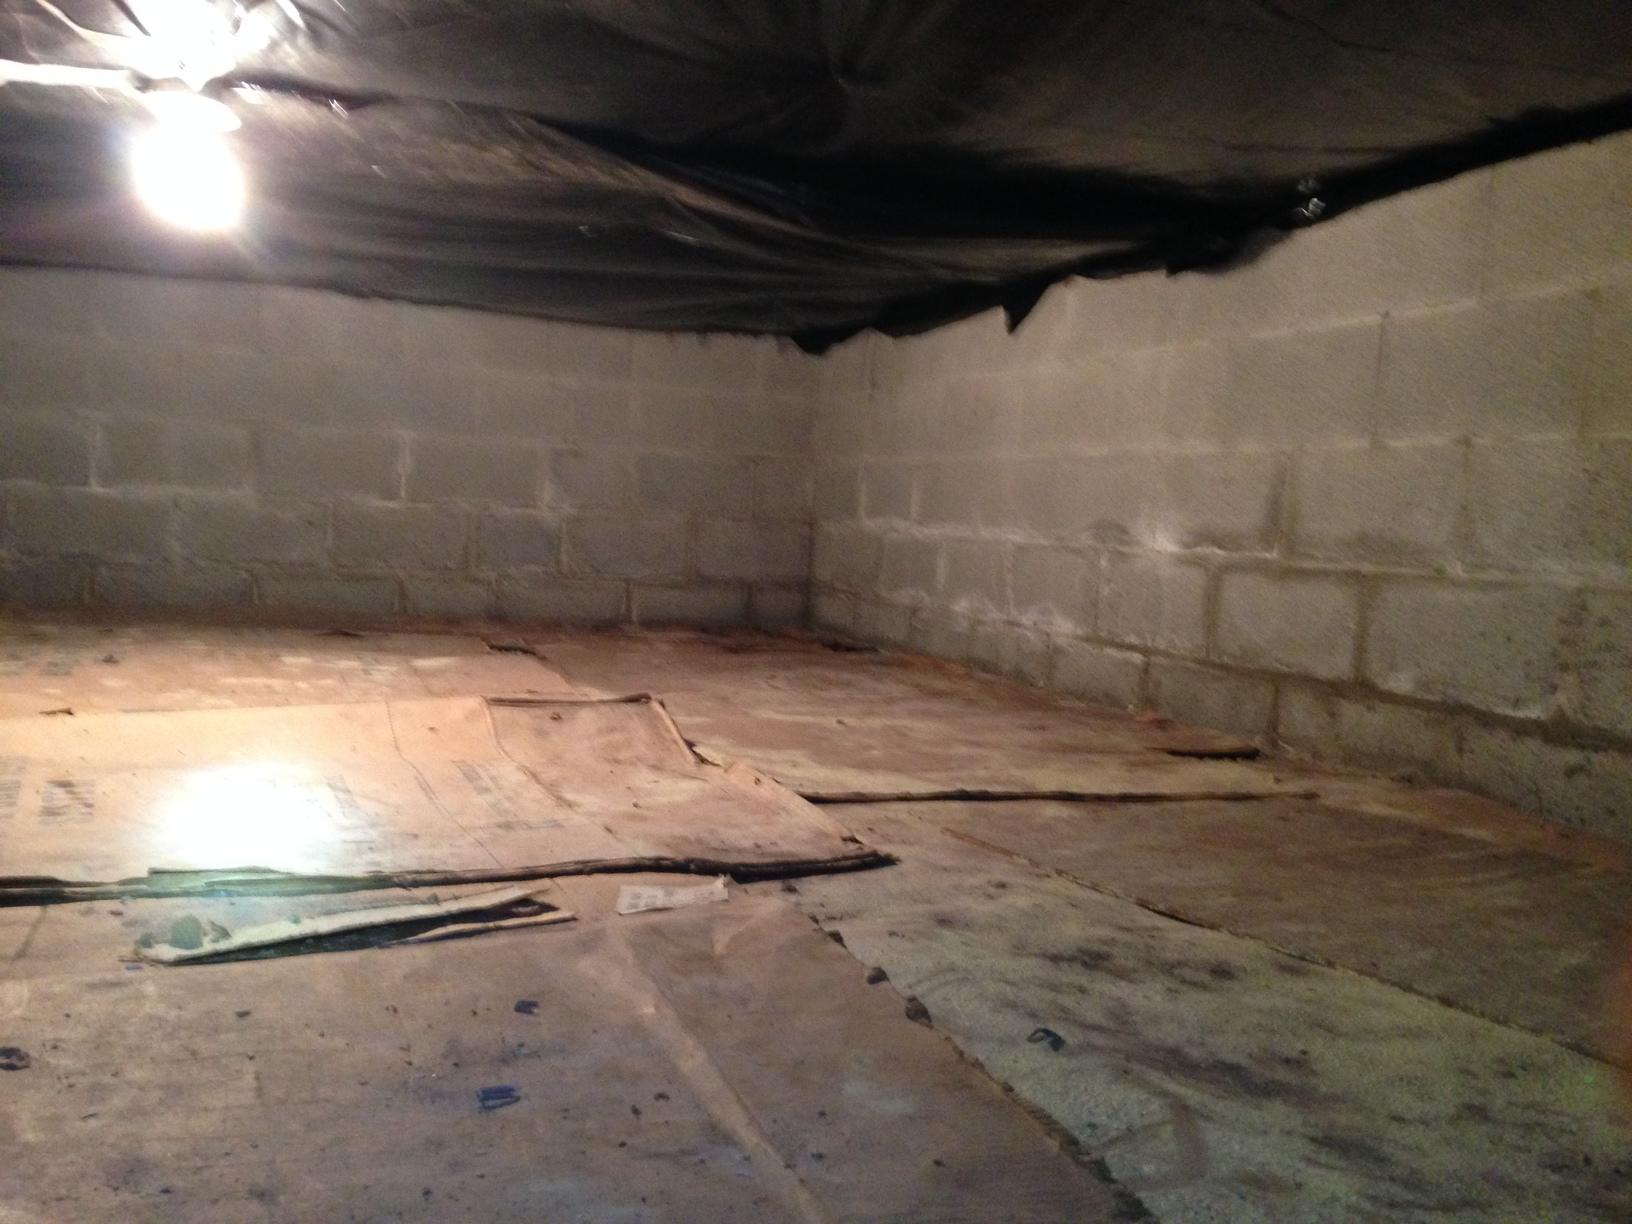 Mt. Morris, NY - Spray Foam Improved Comfort in Living Space Above Crawl Space - Before Photo